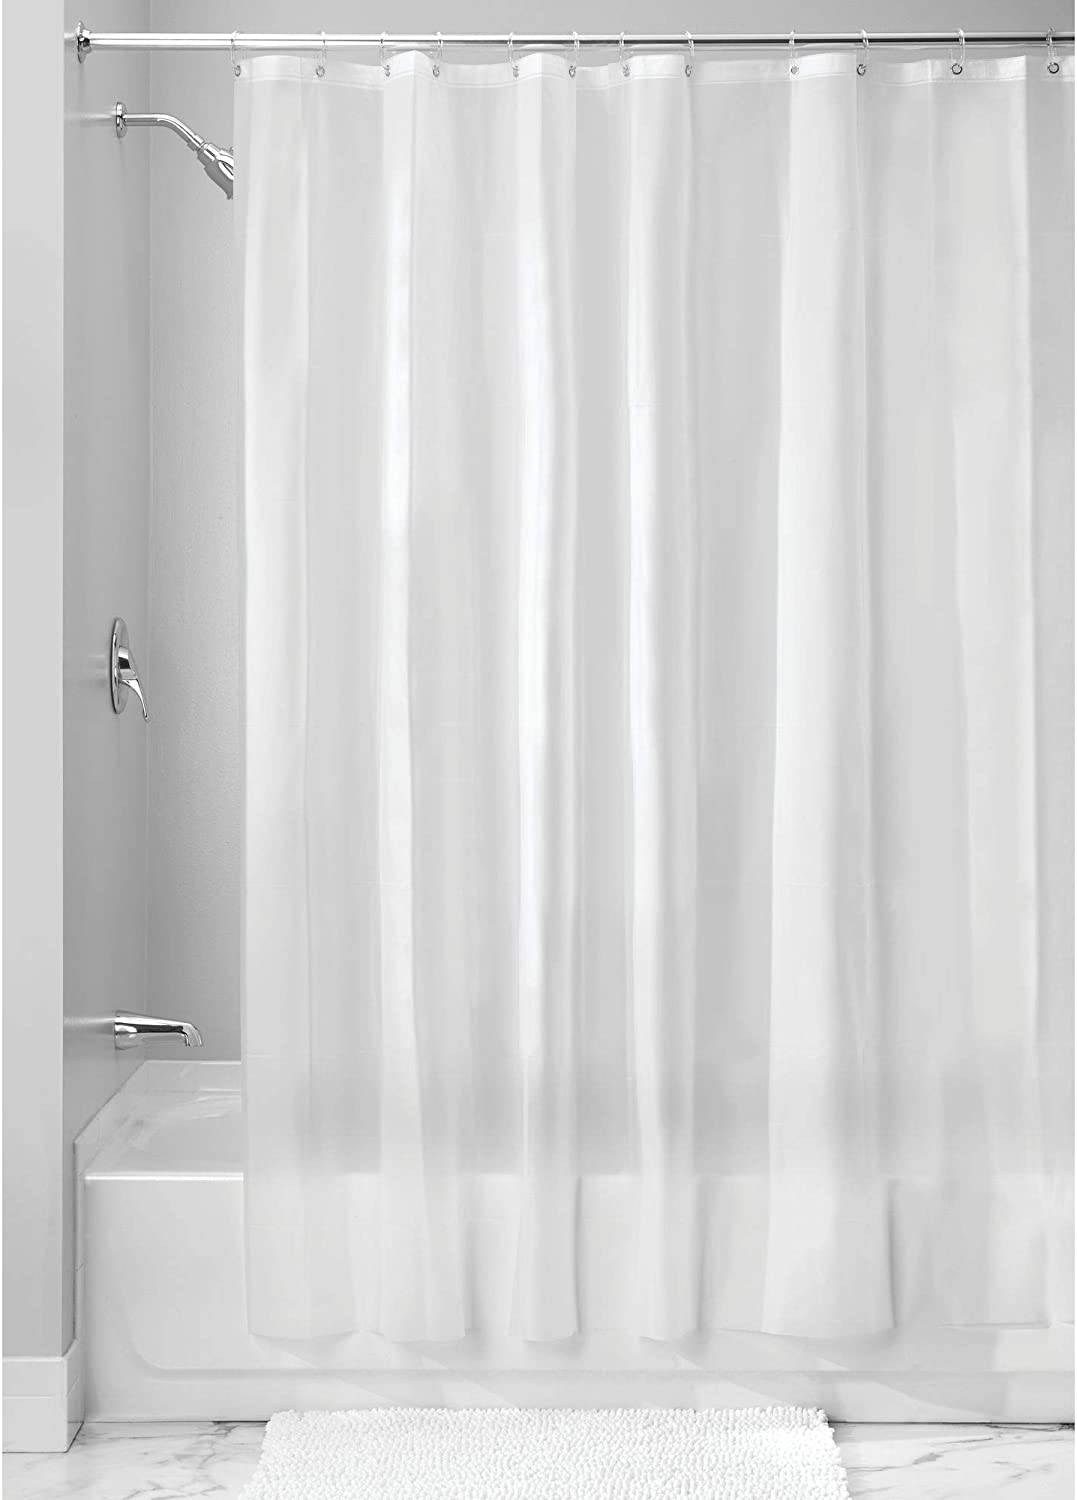 iDesign EVA Plastic Shower Curtain Liner Resist Seattle Mall Free shipping anywhere in the nation Mildew and Mold